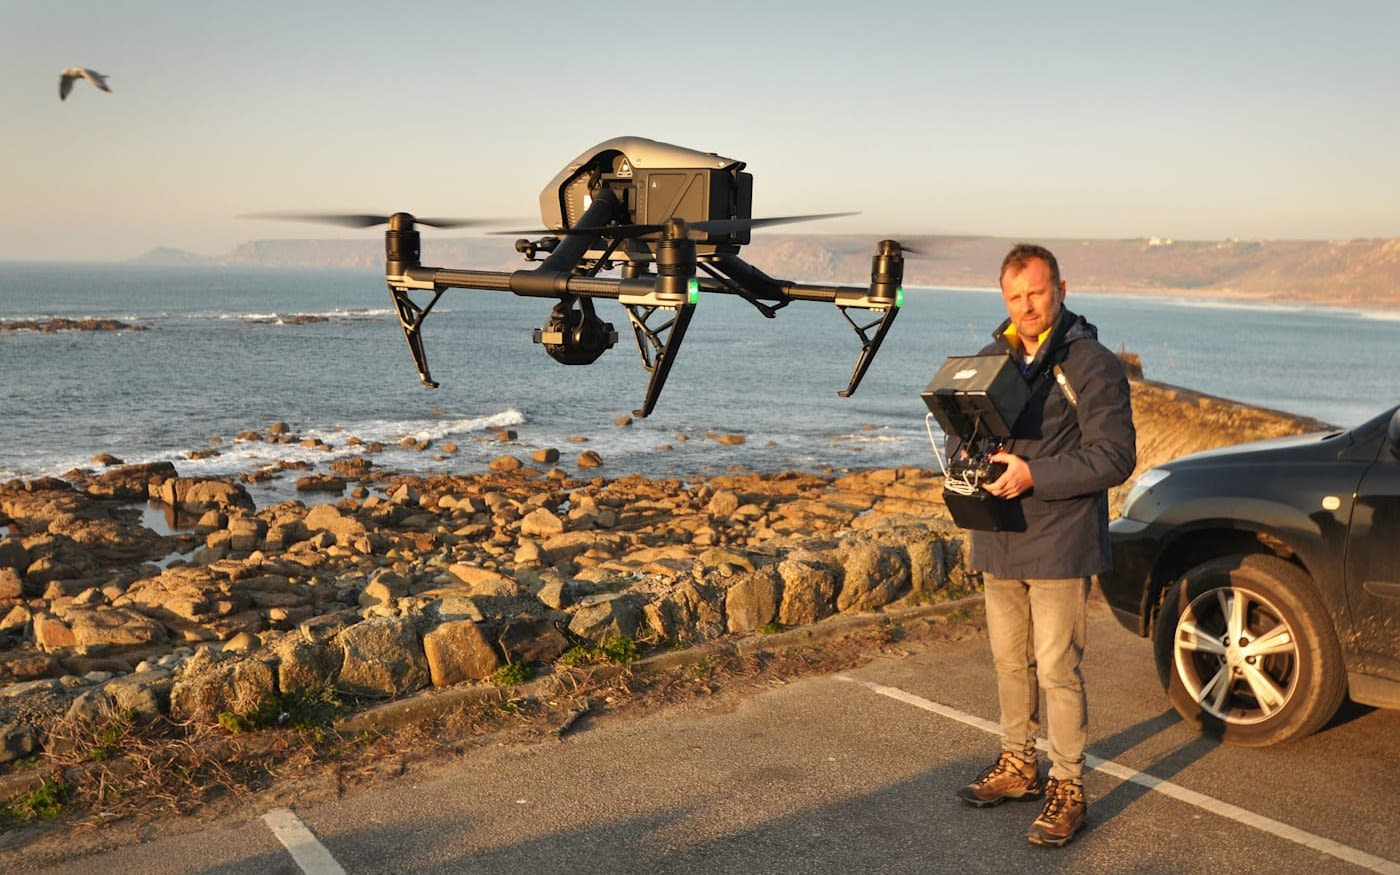 A man stands in a car park overlooking the sea, with a large drone flying next to him